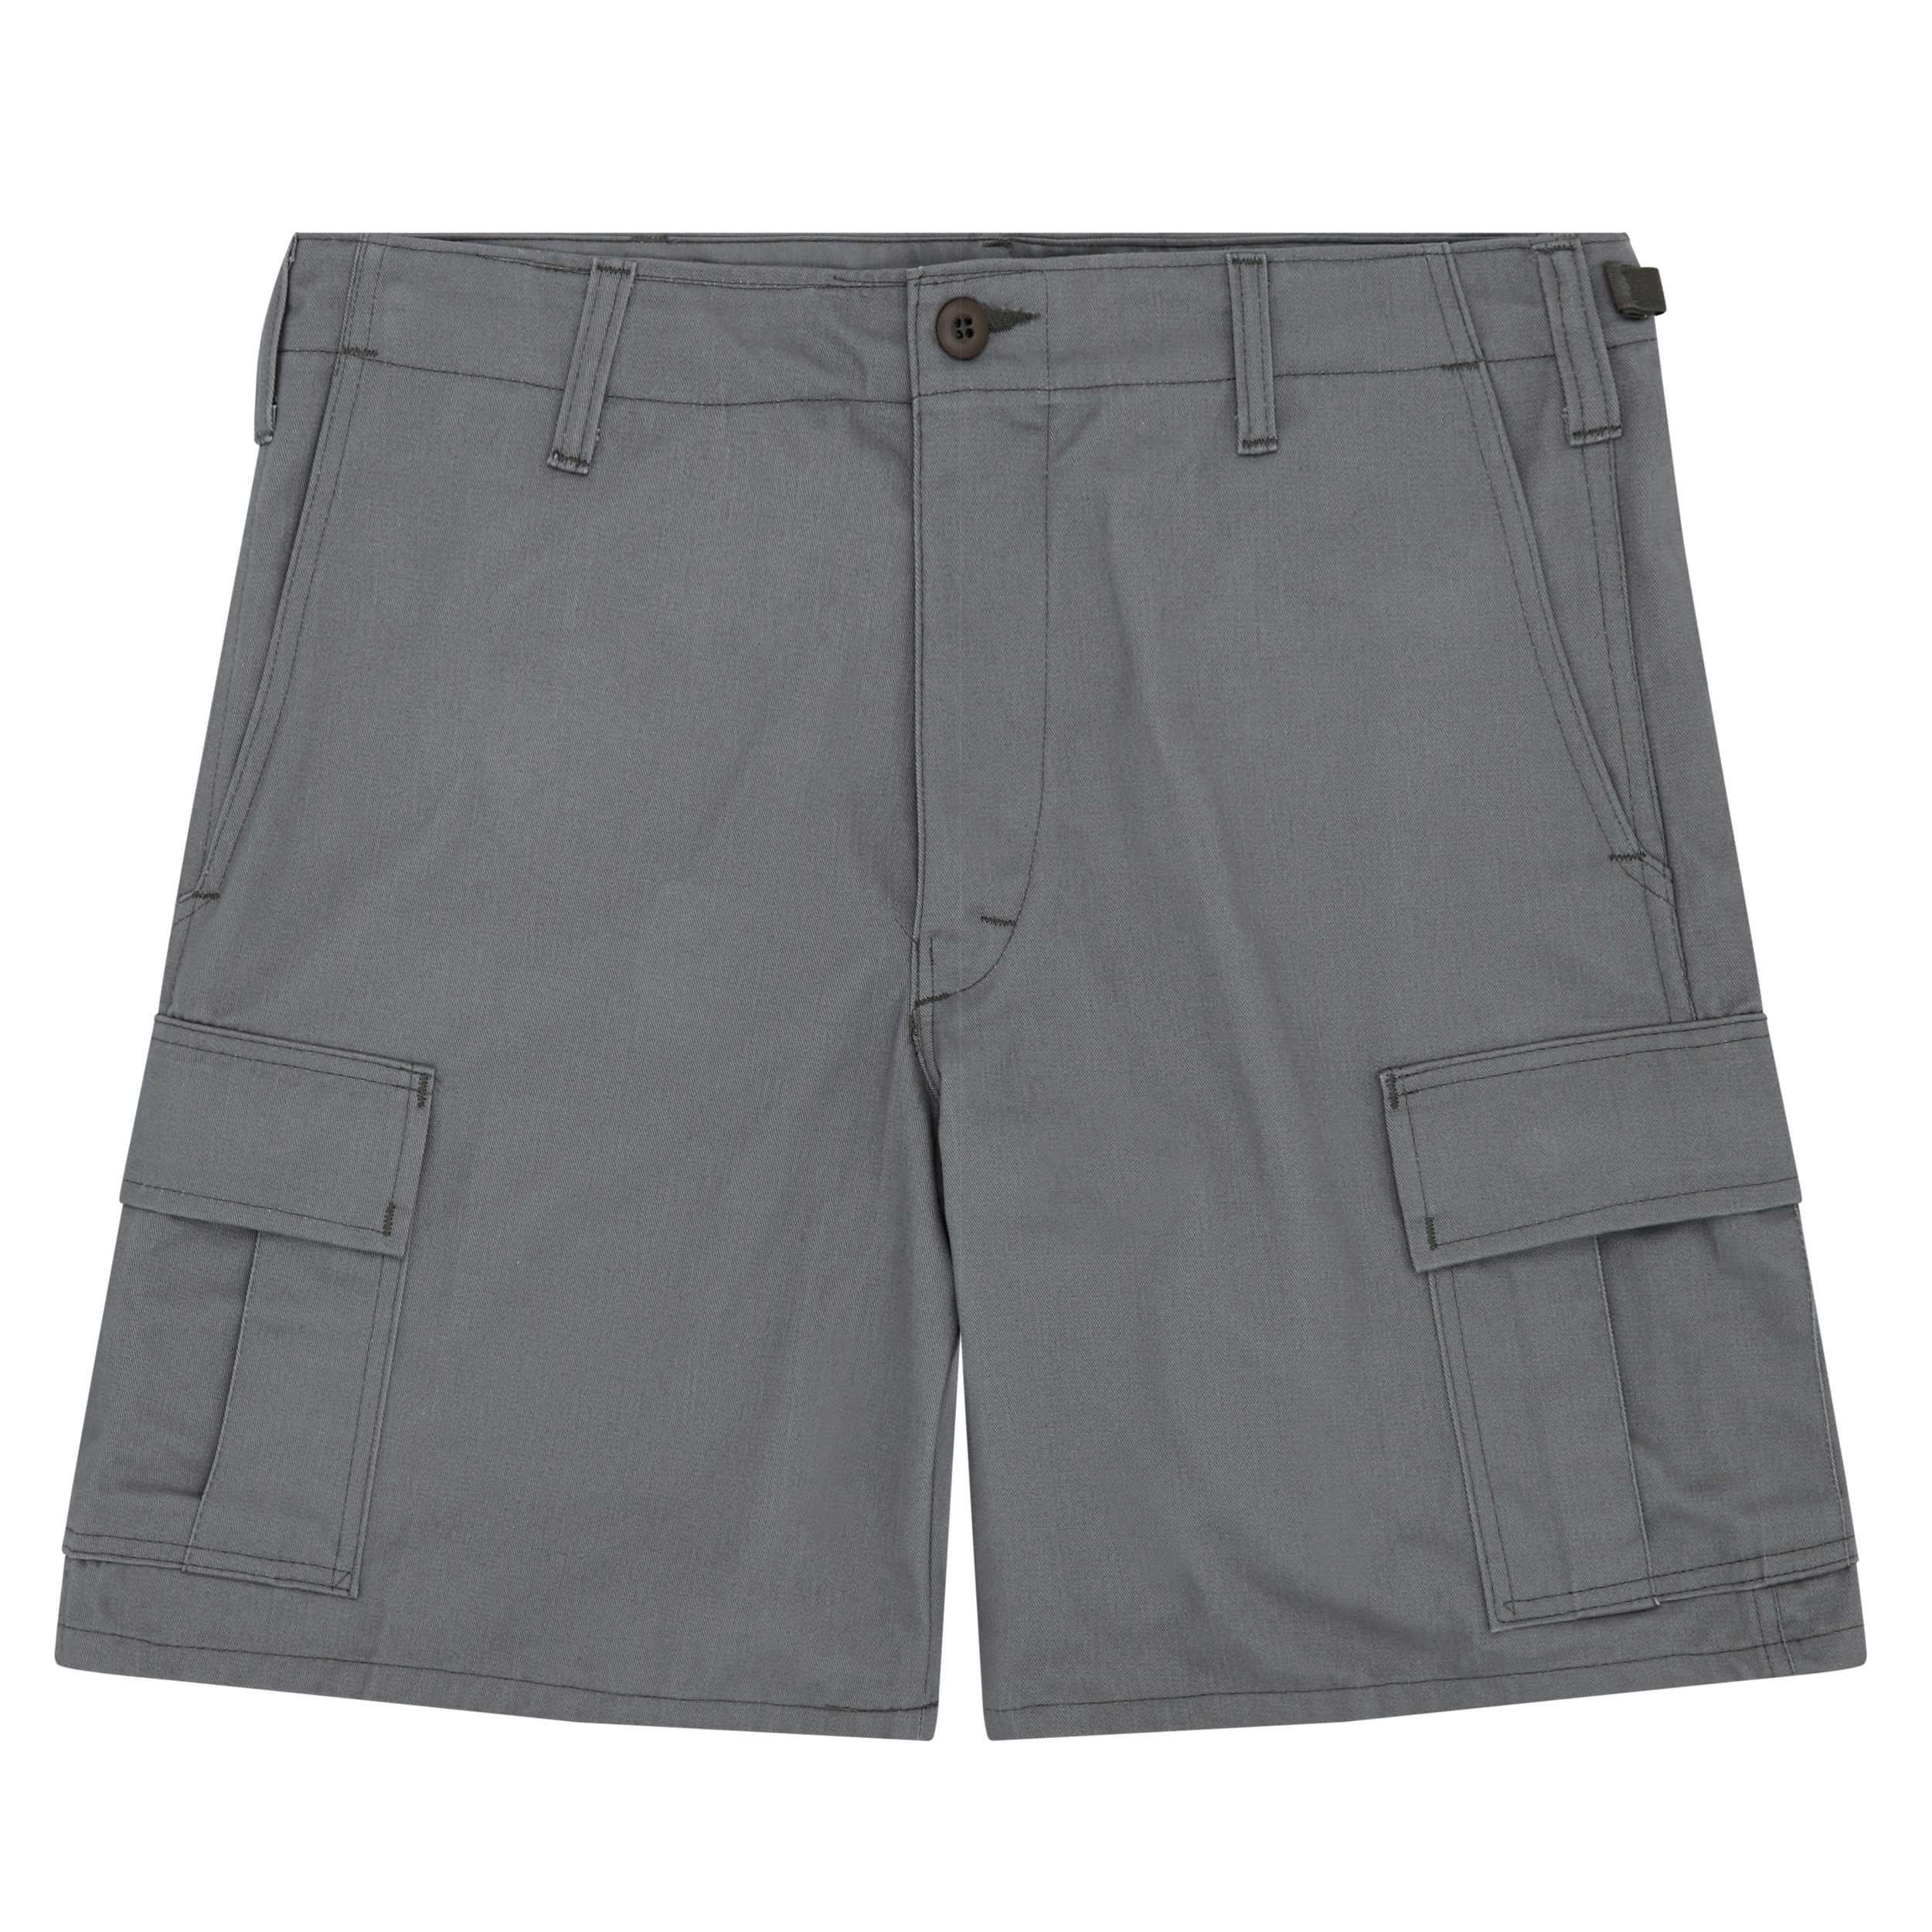 Stan Ray shorts at Urban Outfitters£60